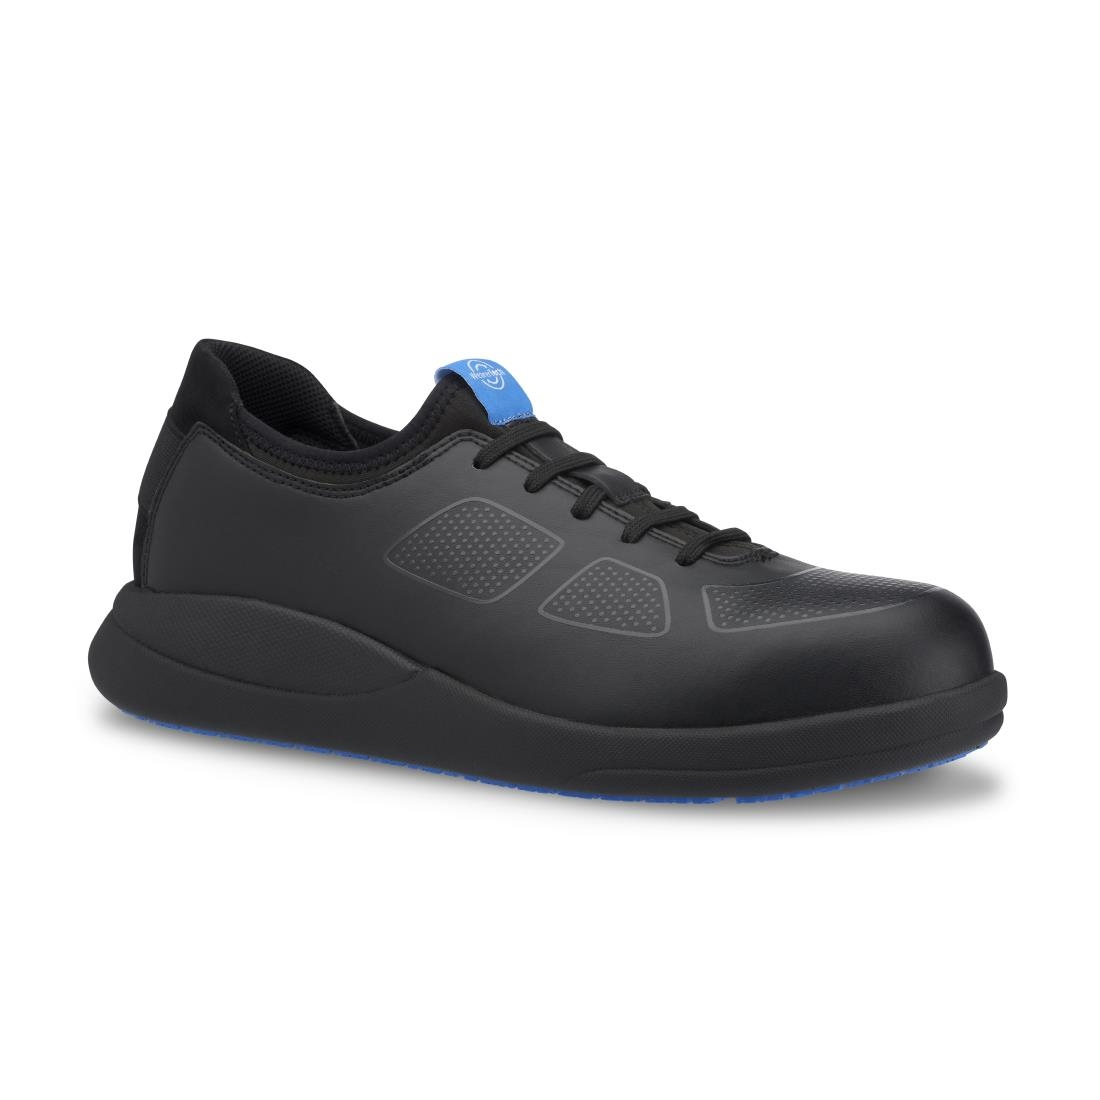 Wearertech Transform Safety Trainer Black With Firm Insole Size 43